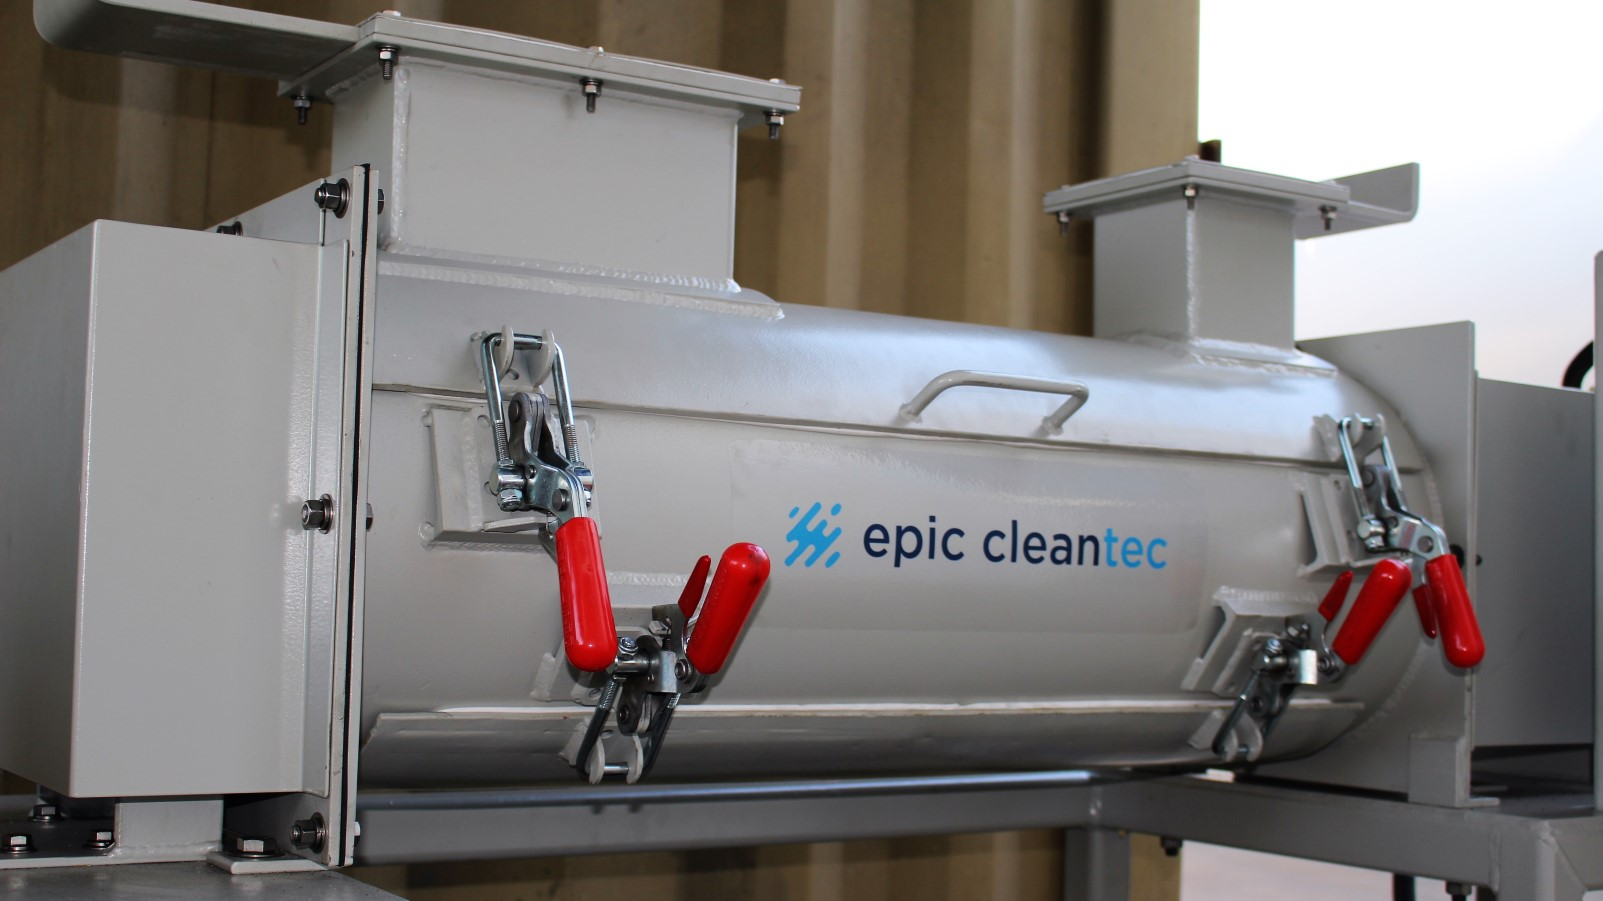 Epic CleanTec's prototype system. Photo: courtesy